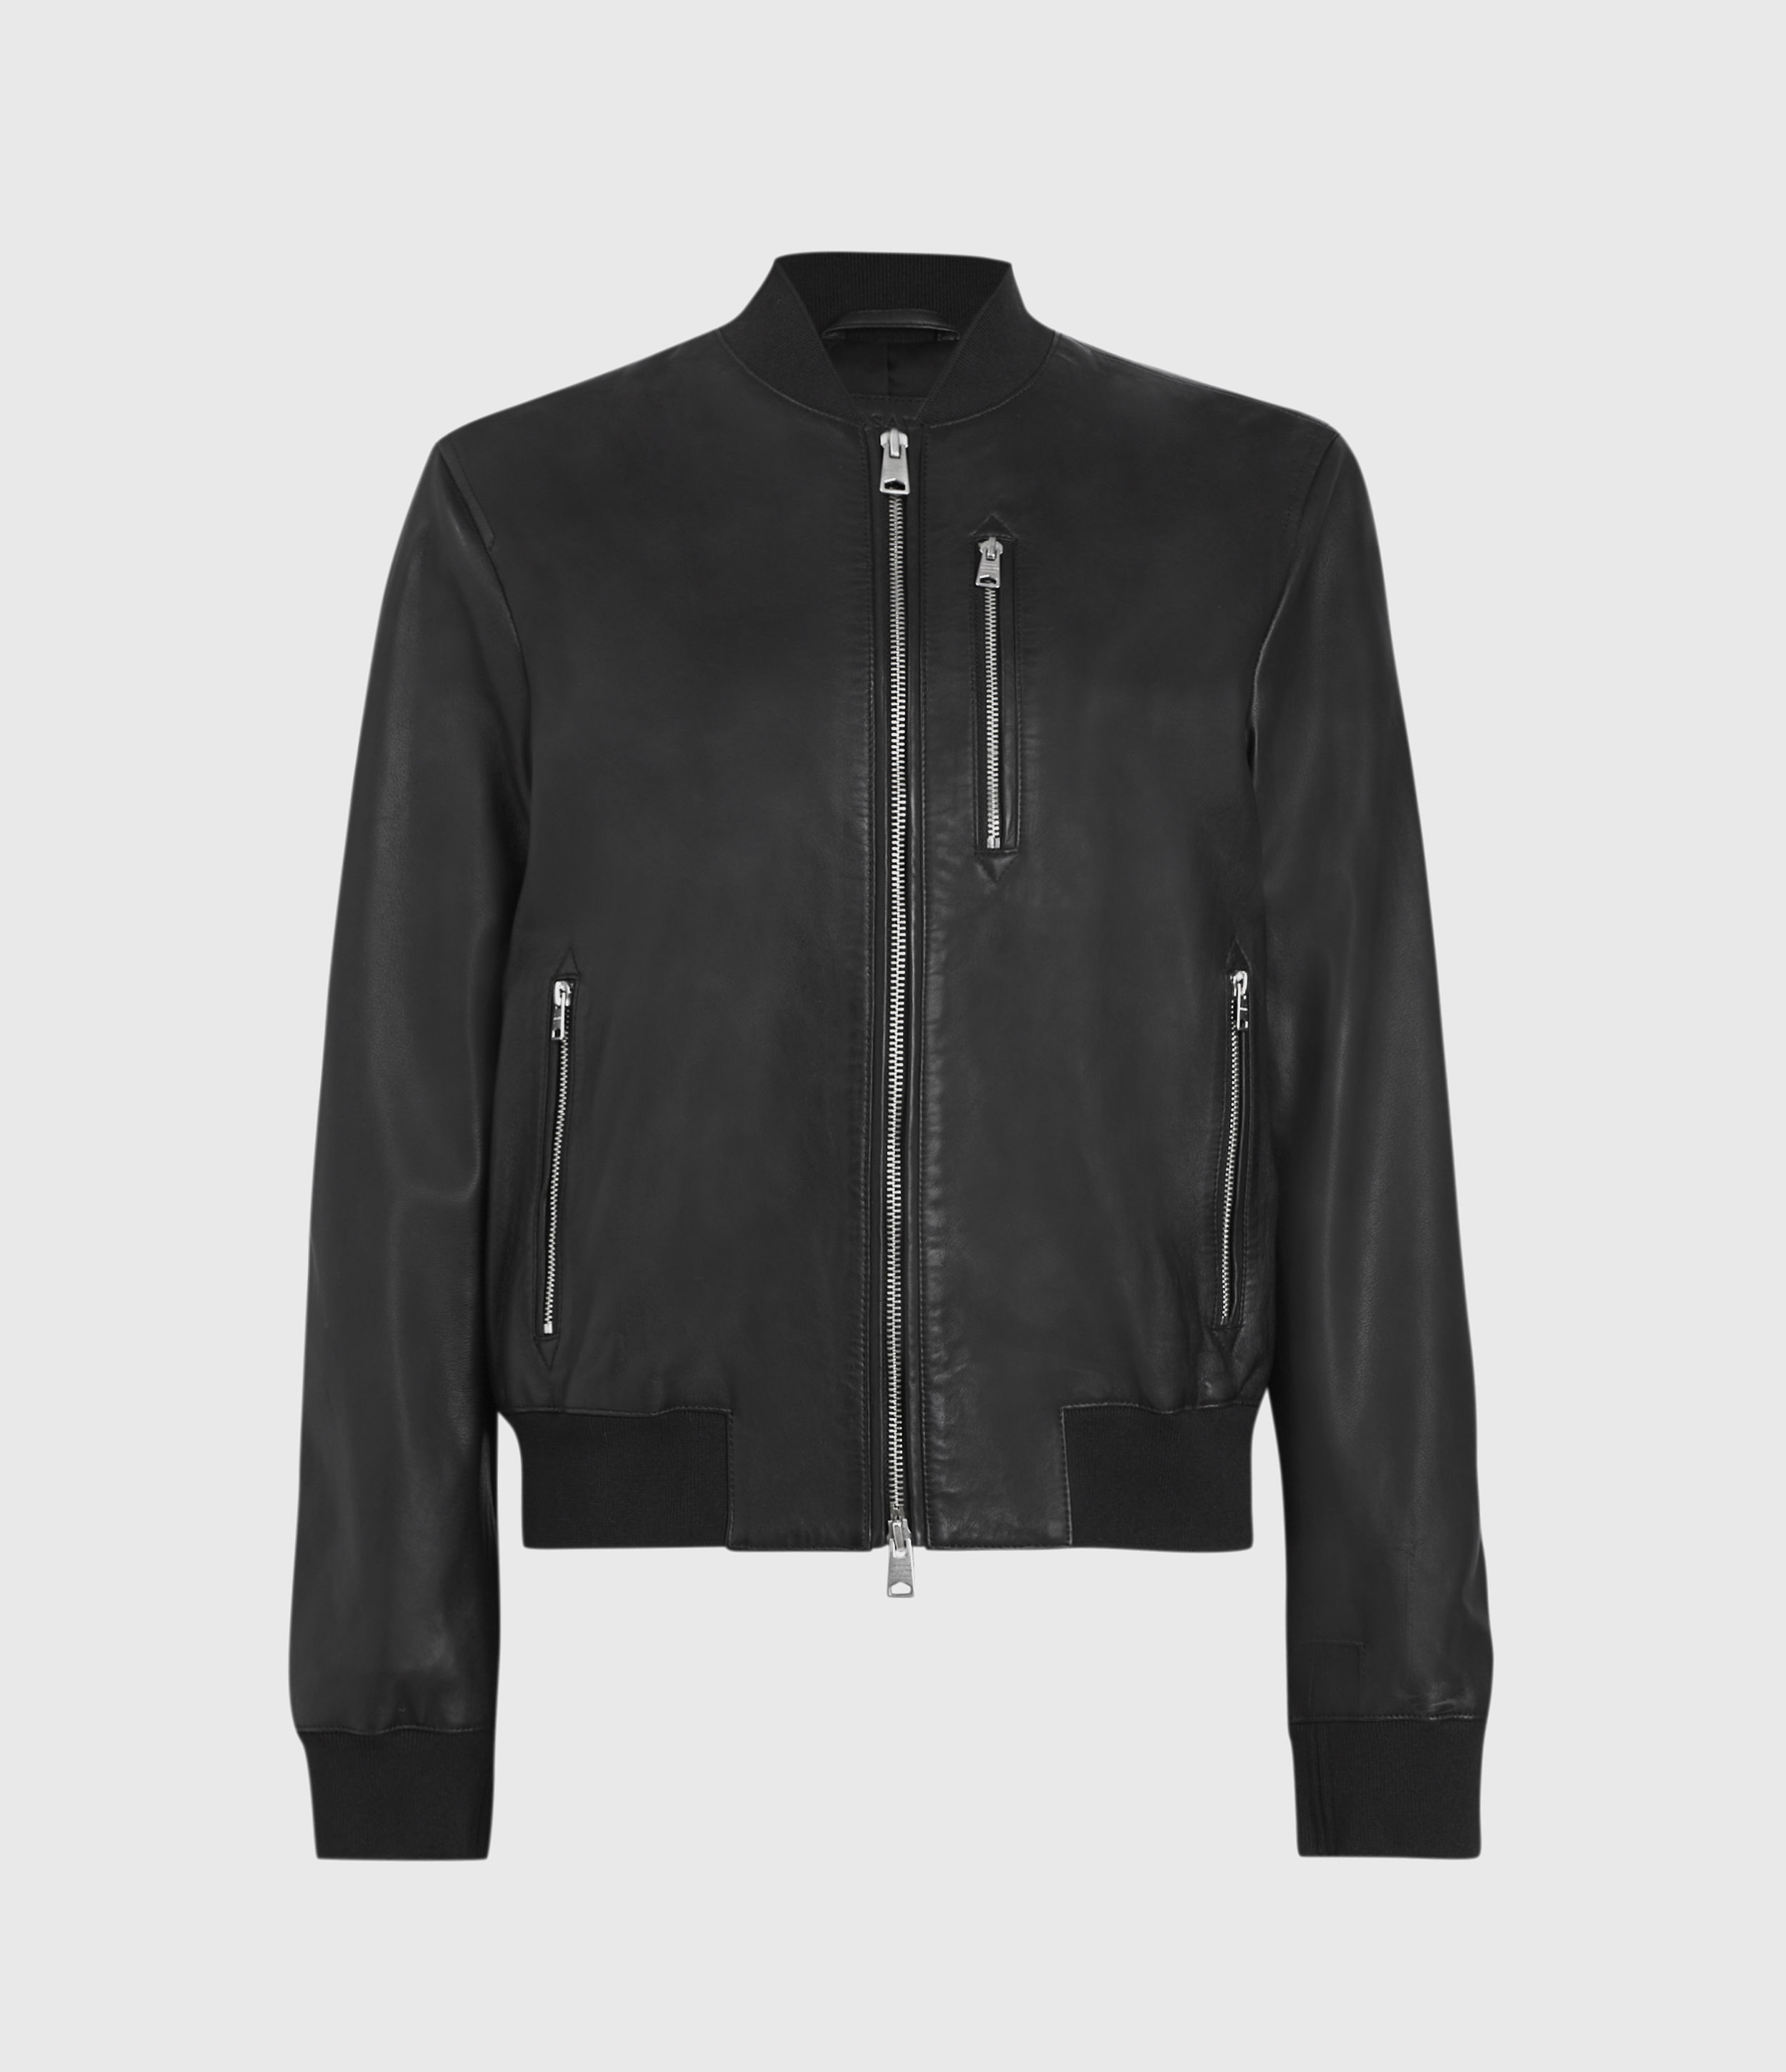 AllSaints Women's Leather Lightweight Remy Bomber Jacket, Black, Size: 4